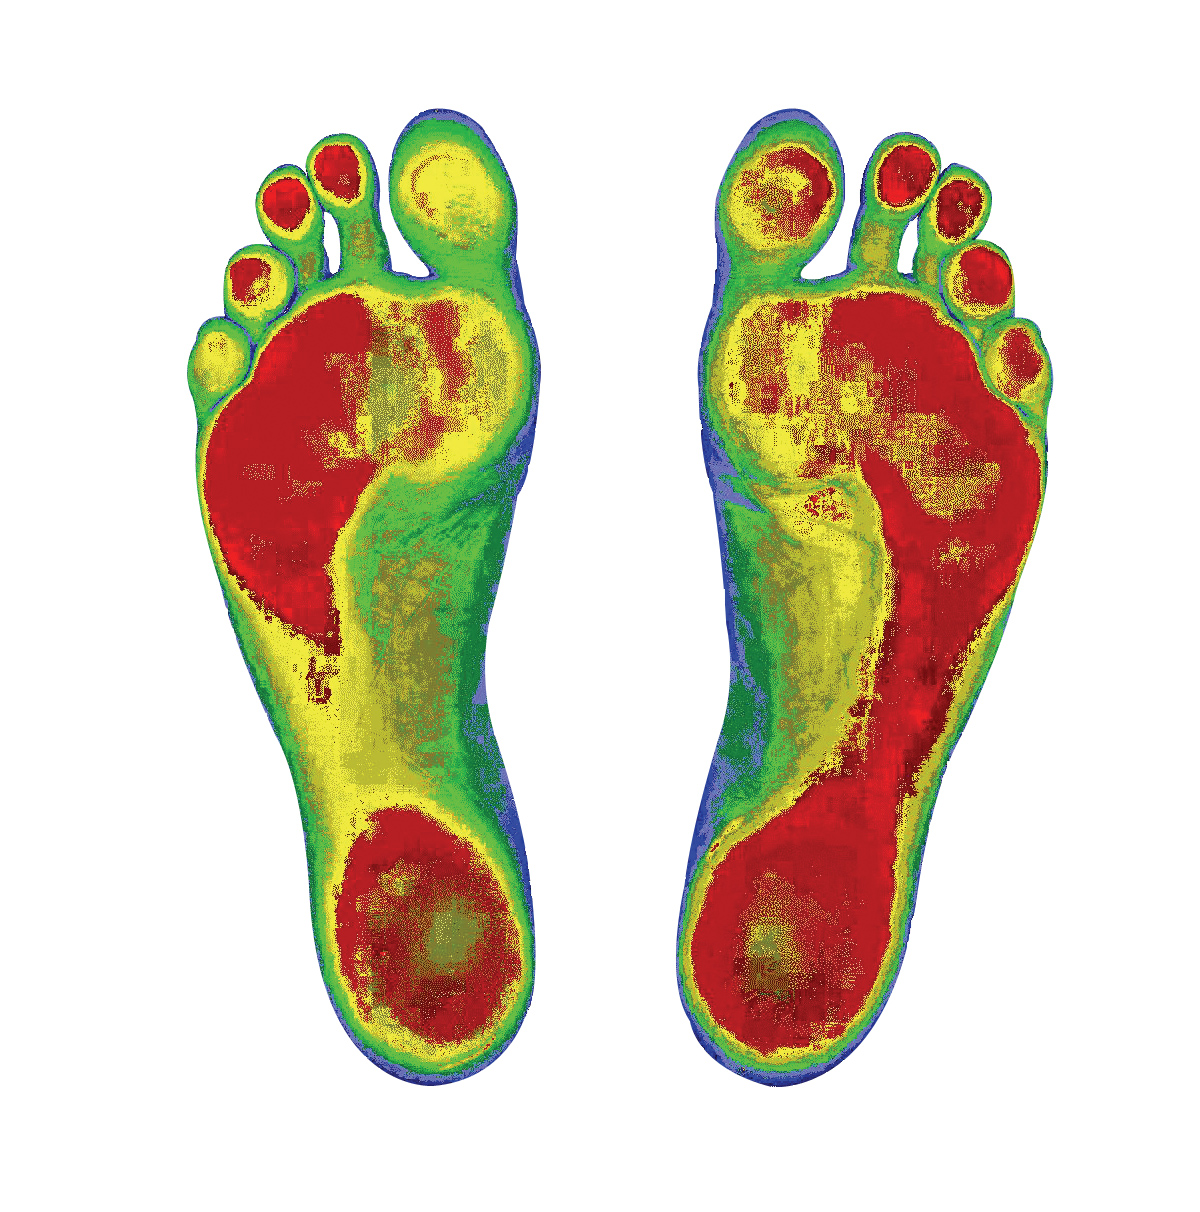 Colored Soles of Feet Showing a the Distribution of Weight on the Soles of the Feet